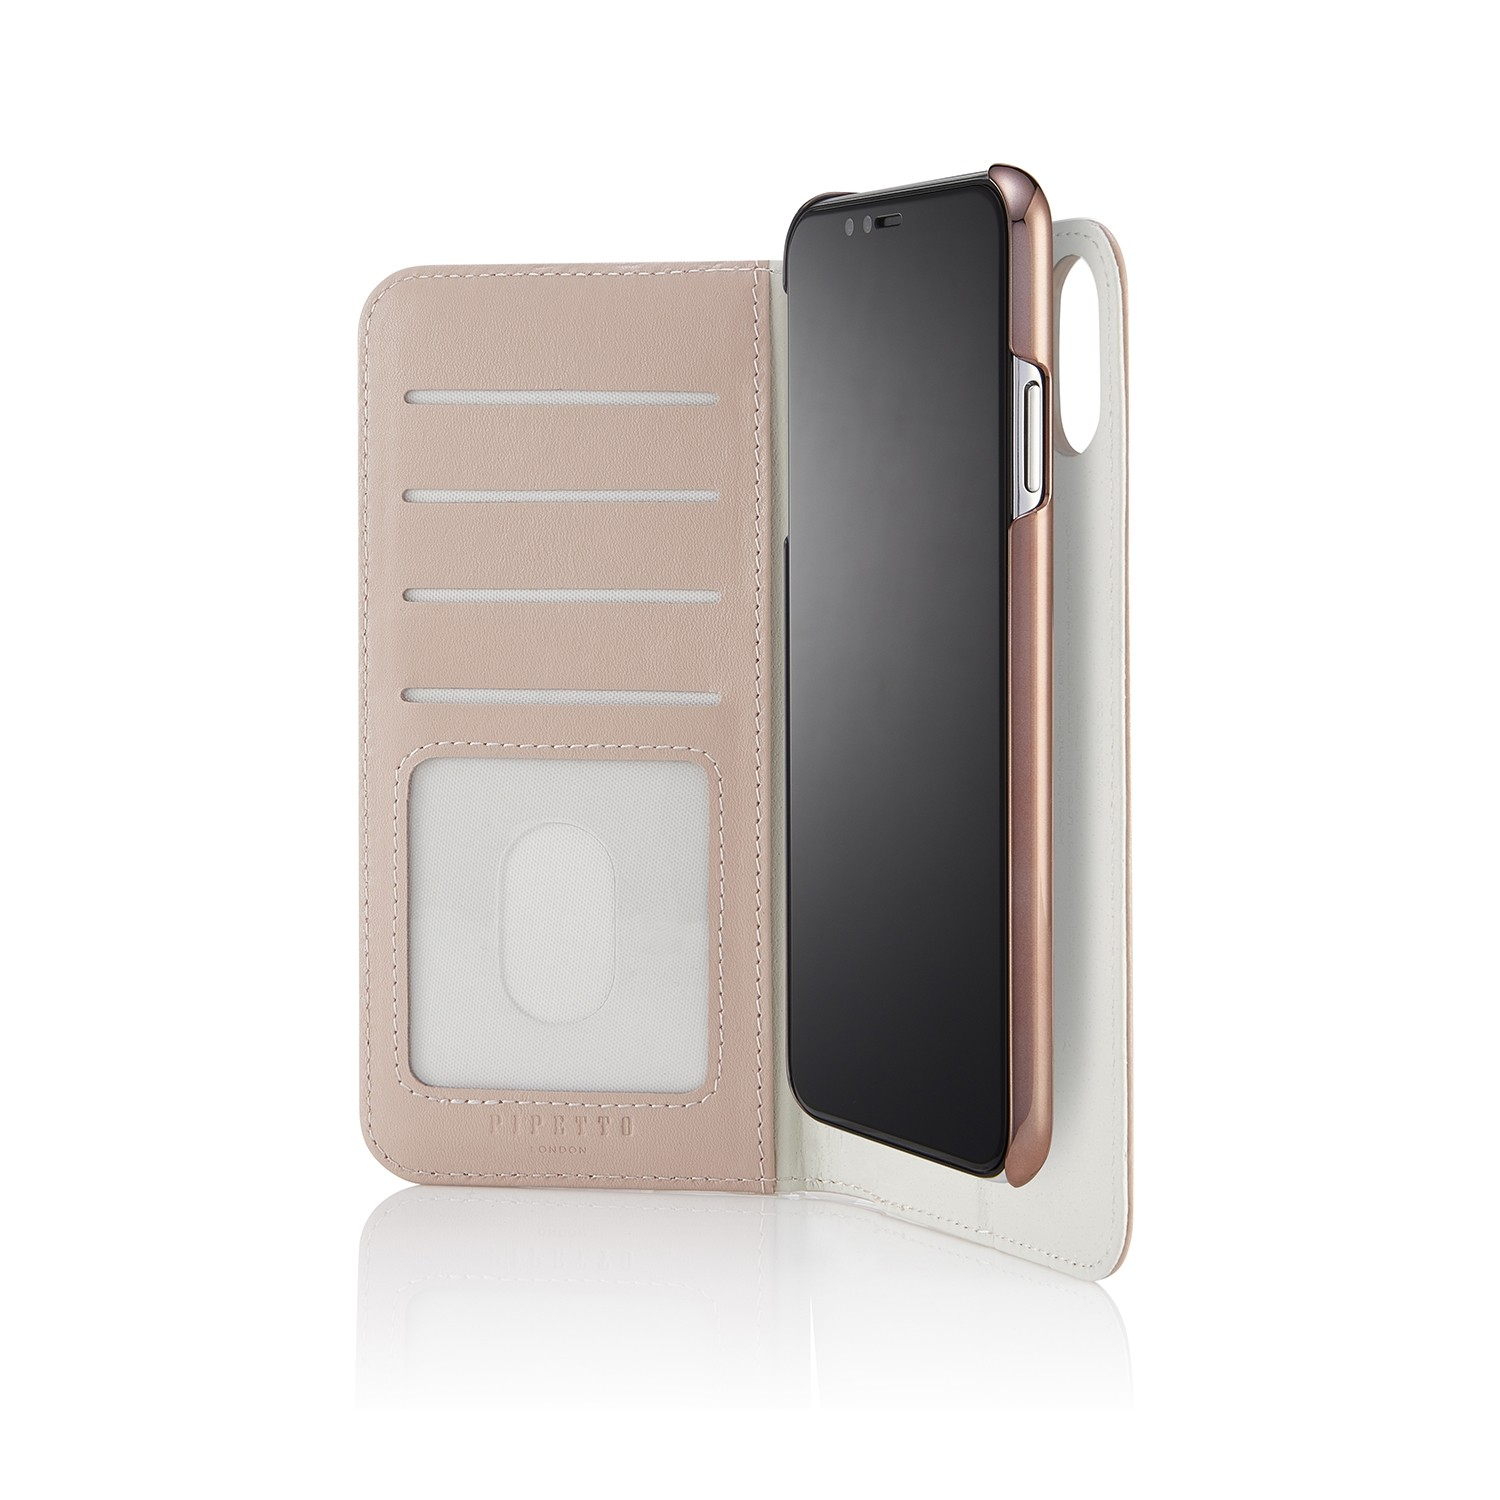 competitive price 1c758 dff9b iPhone XS Max 2-in-1 Leather Magnetic Folio Case - Dusty Pink